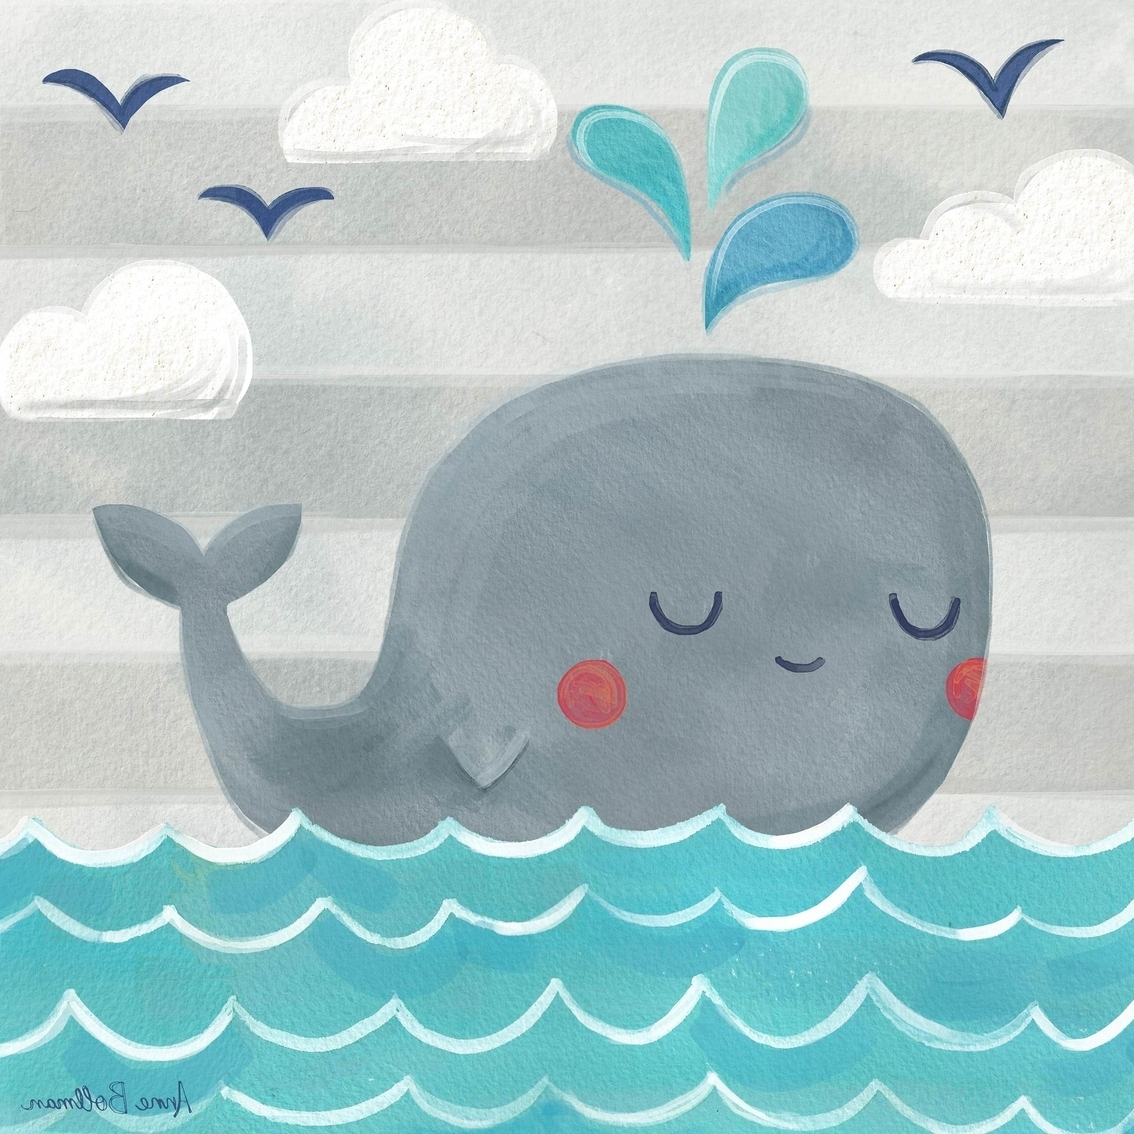 Most Current Whale Canvas Wall Art Inside Greenbox Art 10 X 10 Let's Set Sail Whale Canvas Wall Art (View 8 of 15)